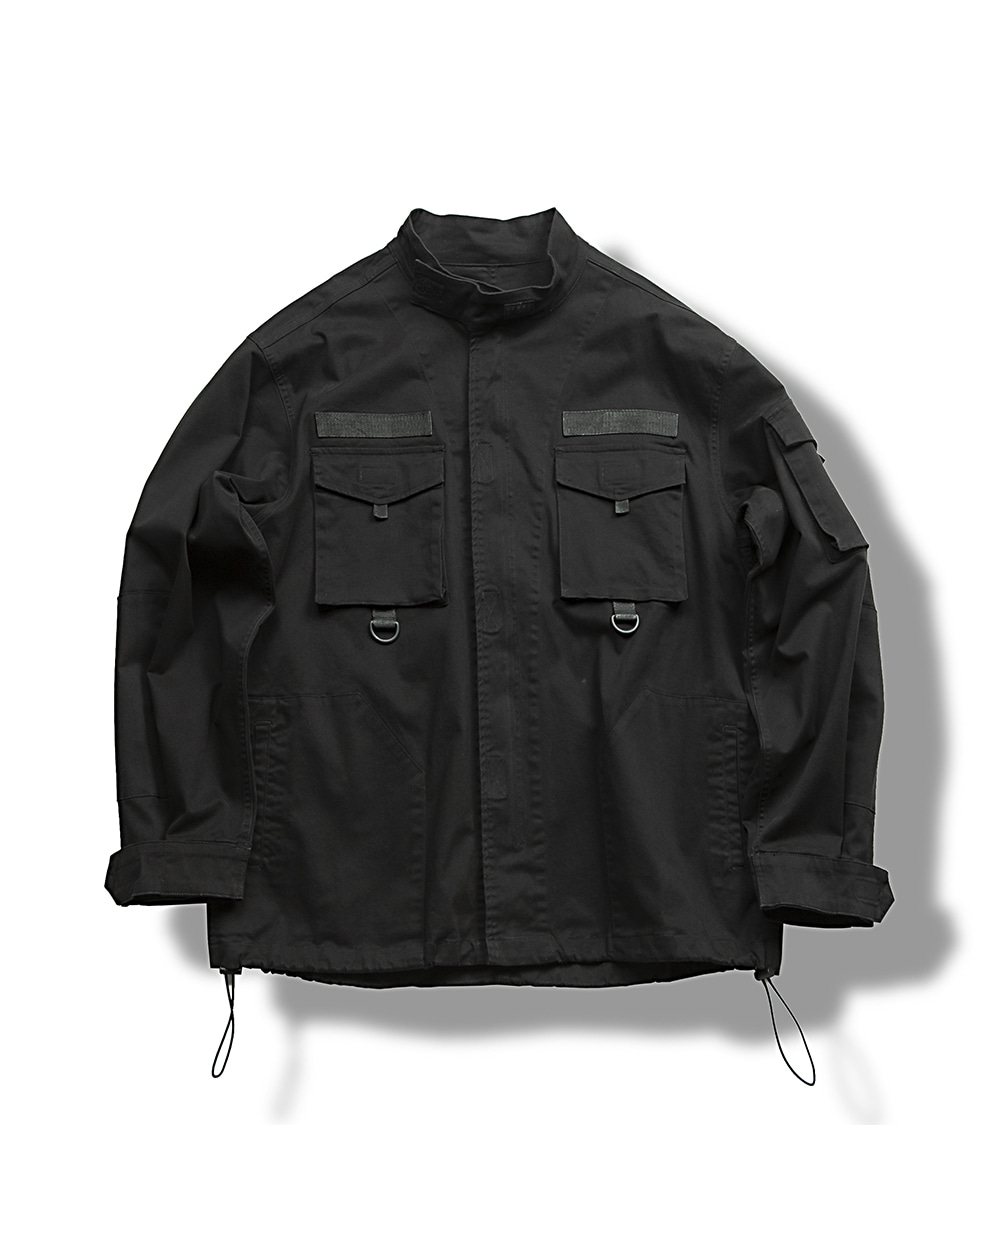 VDMR FIELD JACKET BLACK